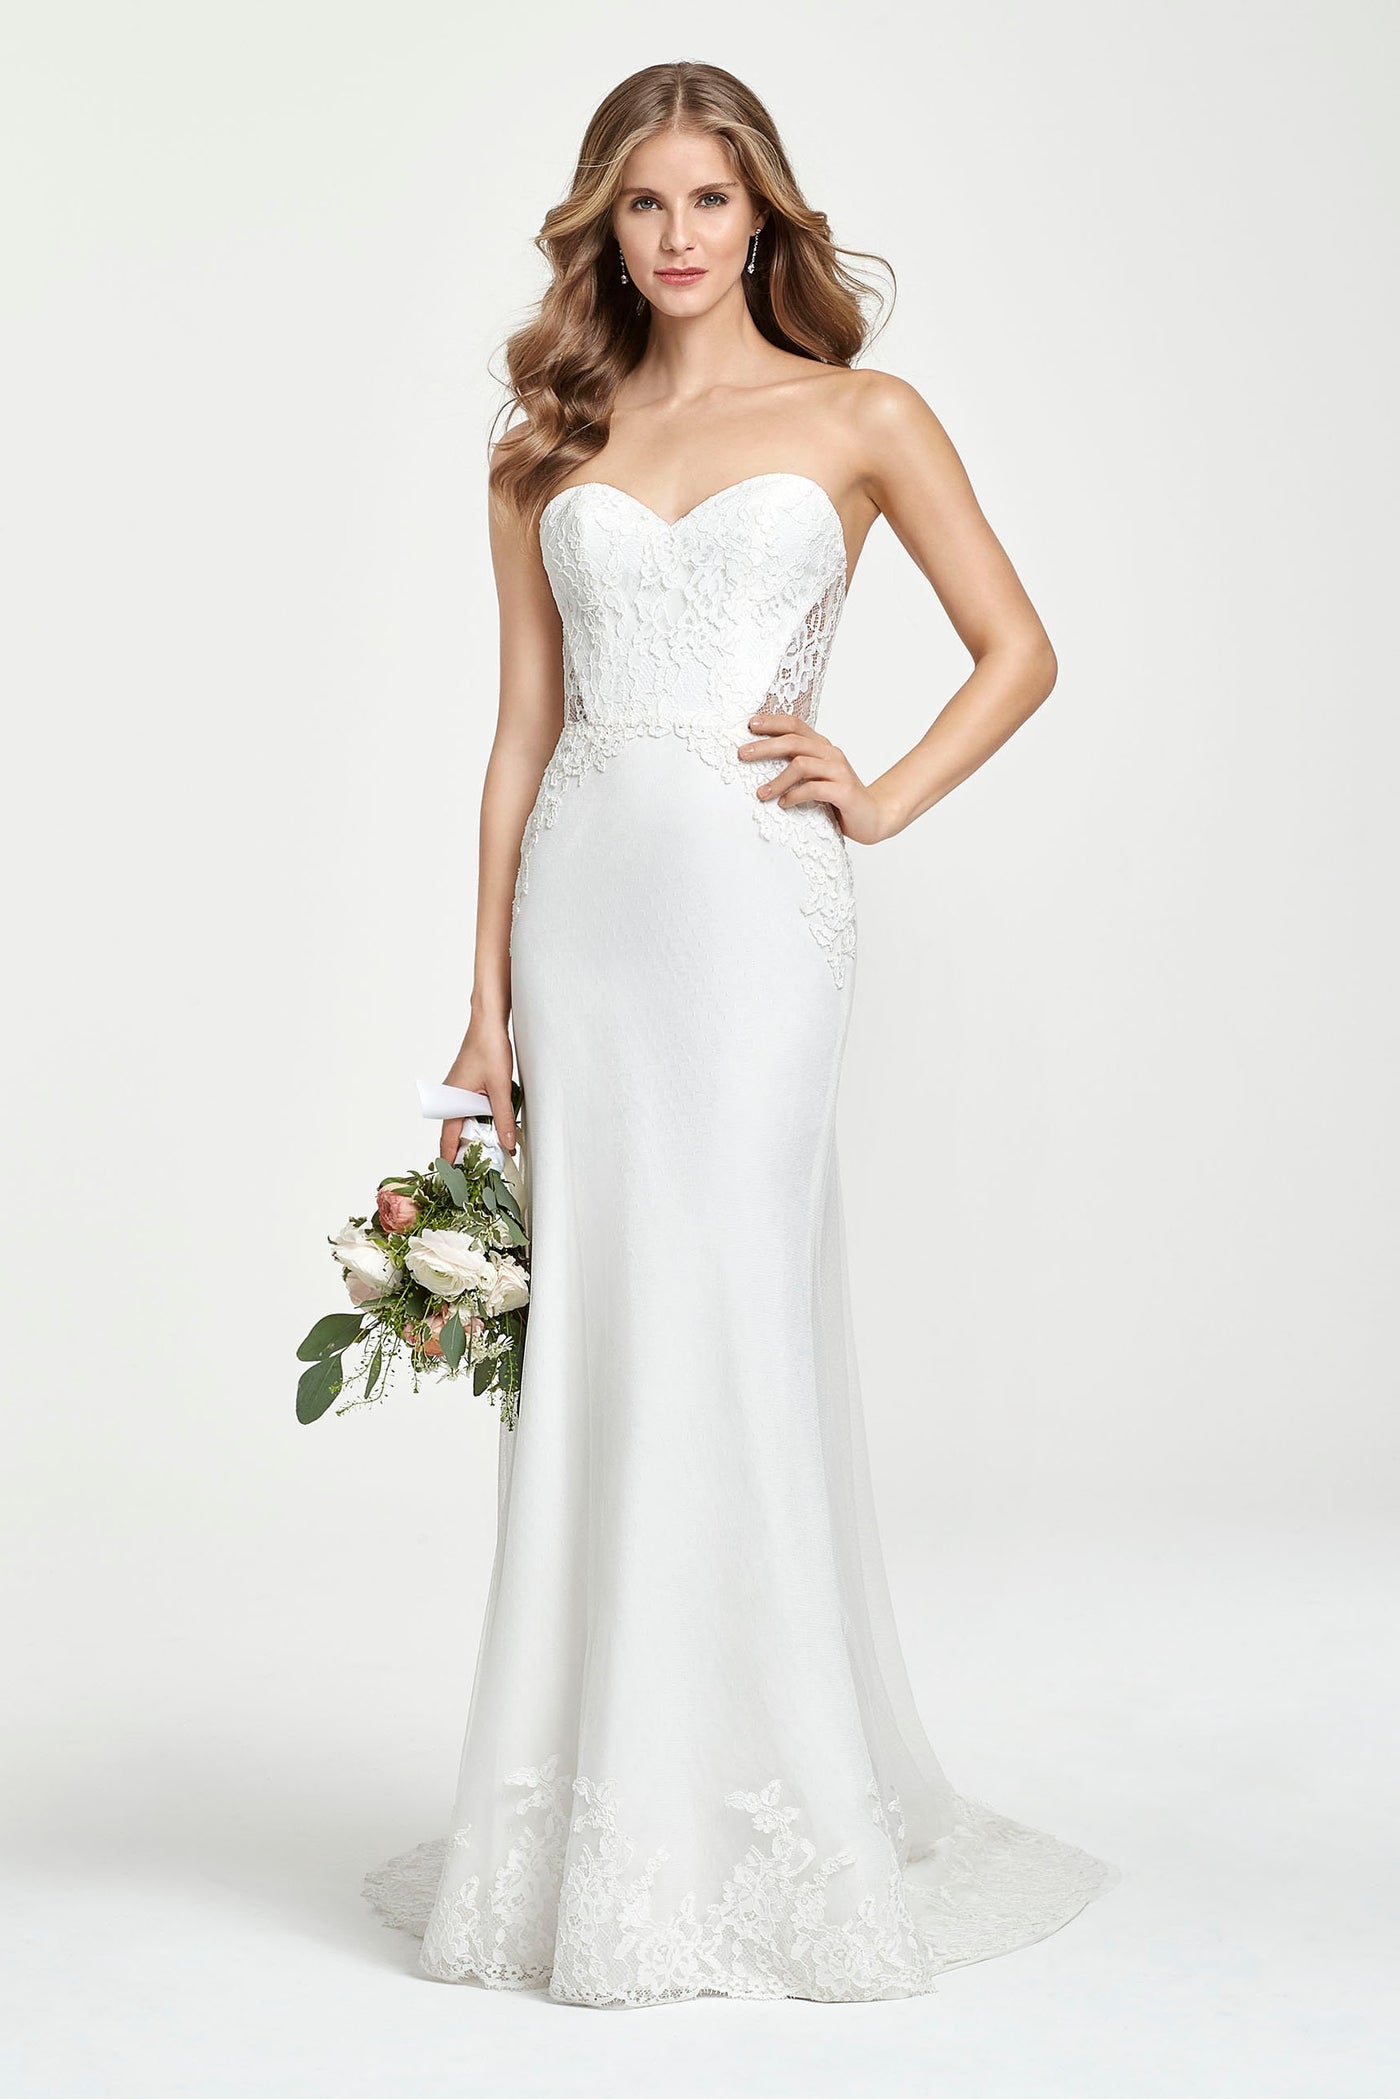 Rosemary, Gown, Ti Adora by Allison Webb - Eternal Bridal